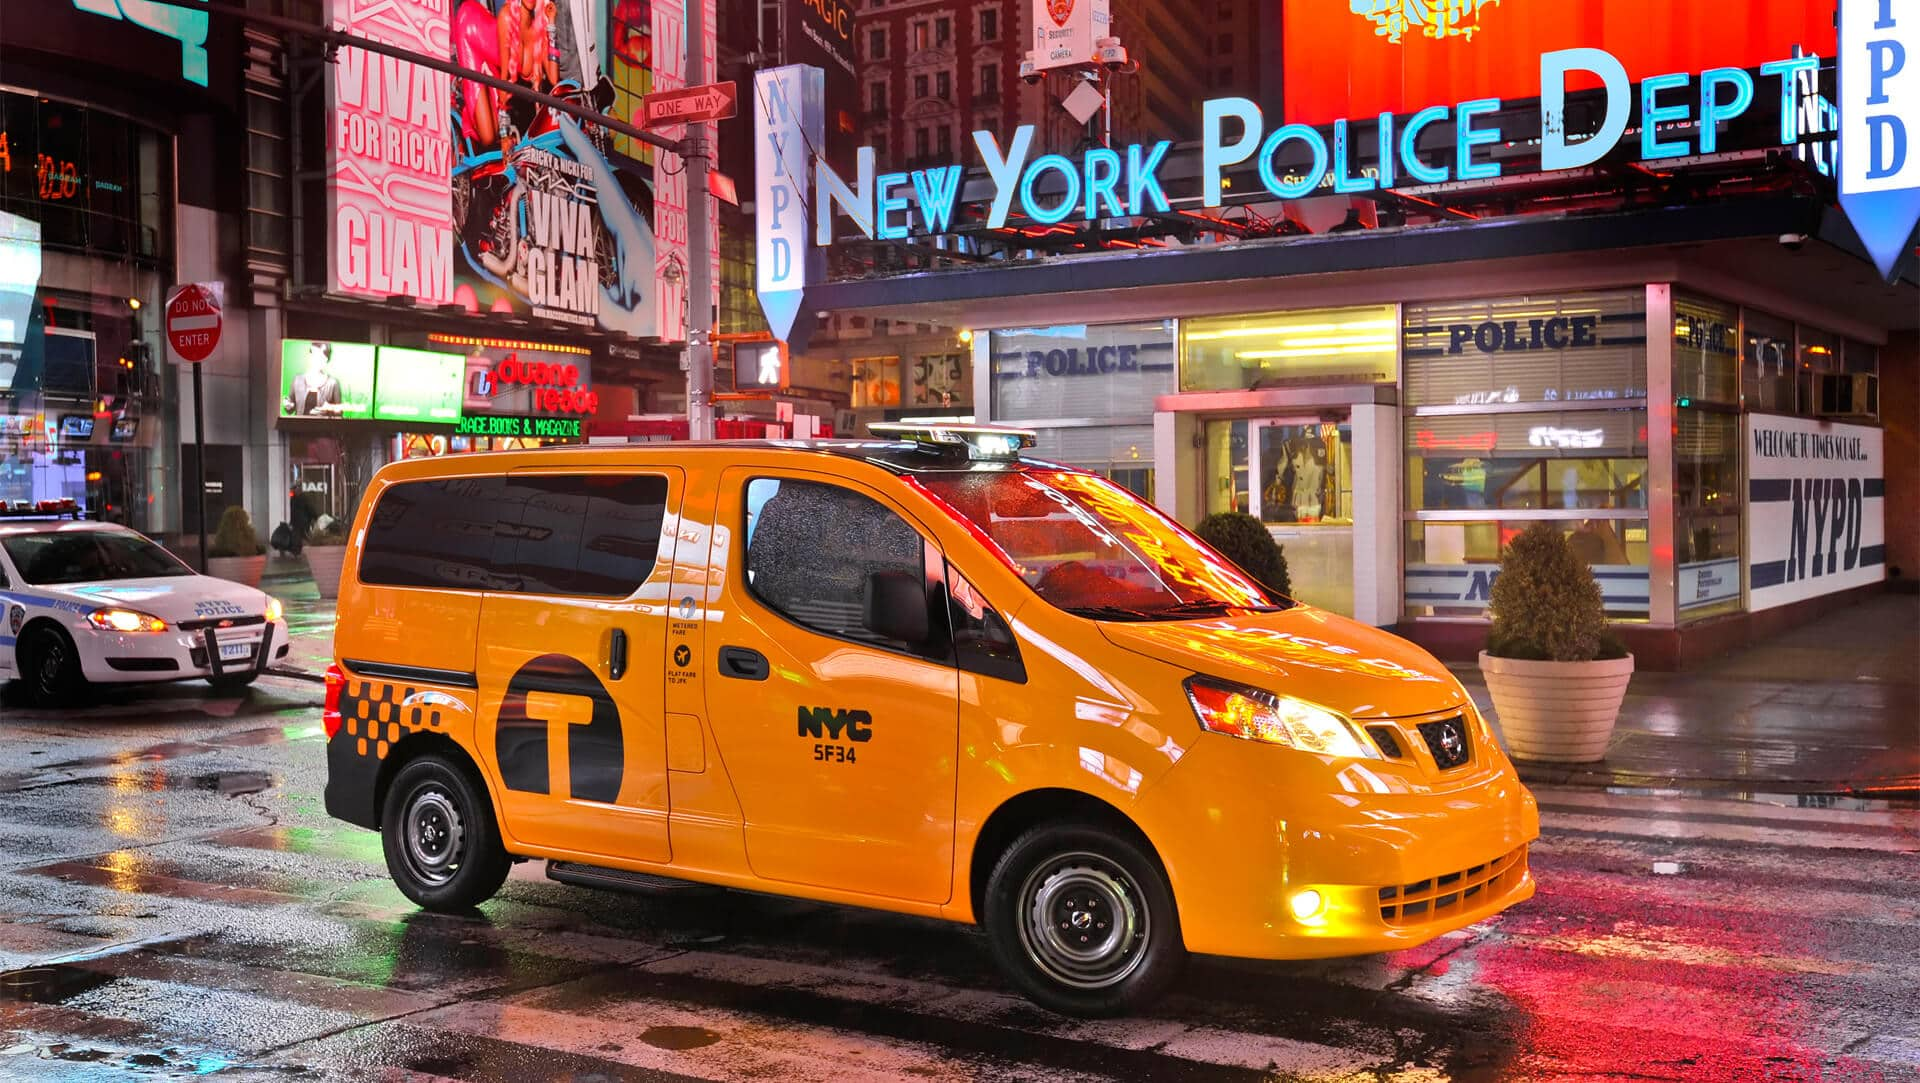 NYC taxis increase fuel efficiency with Nissan partnership